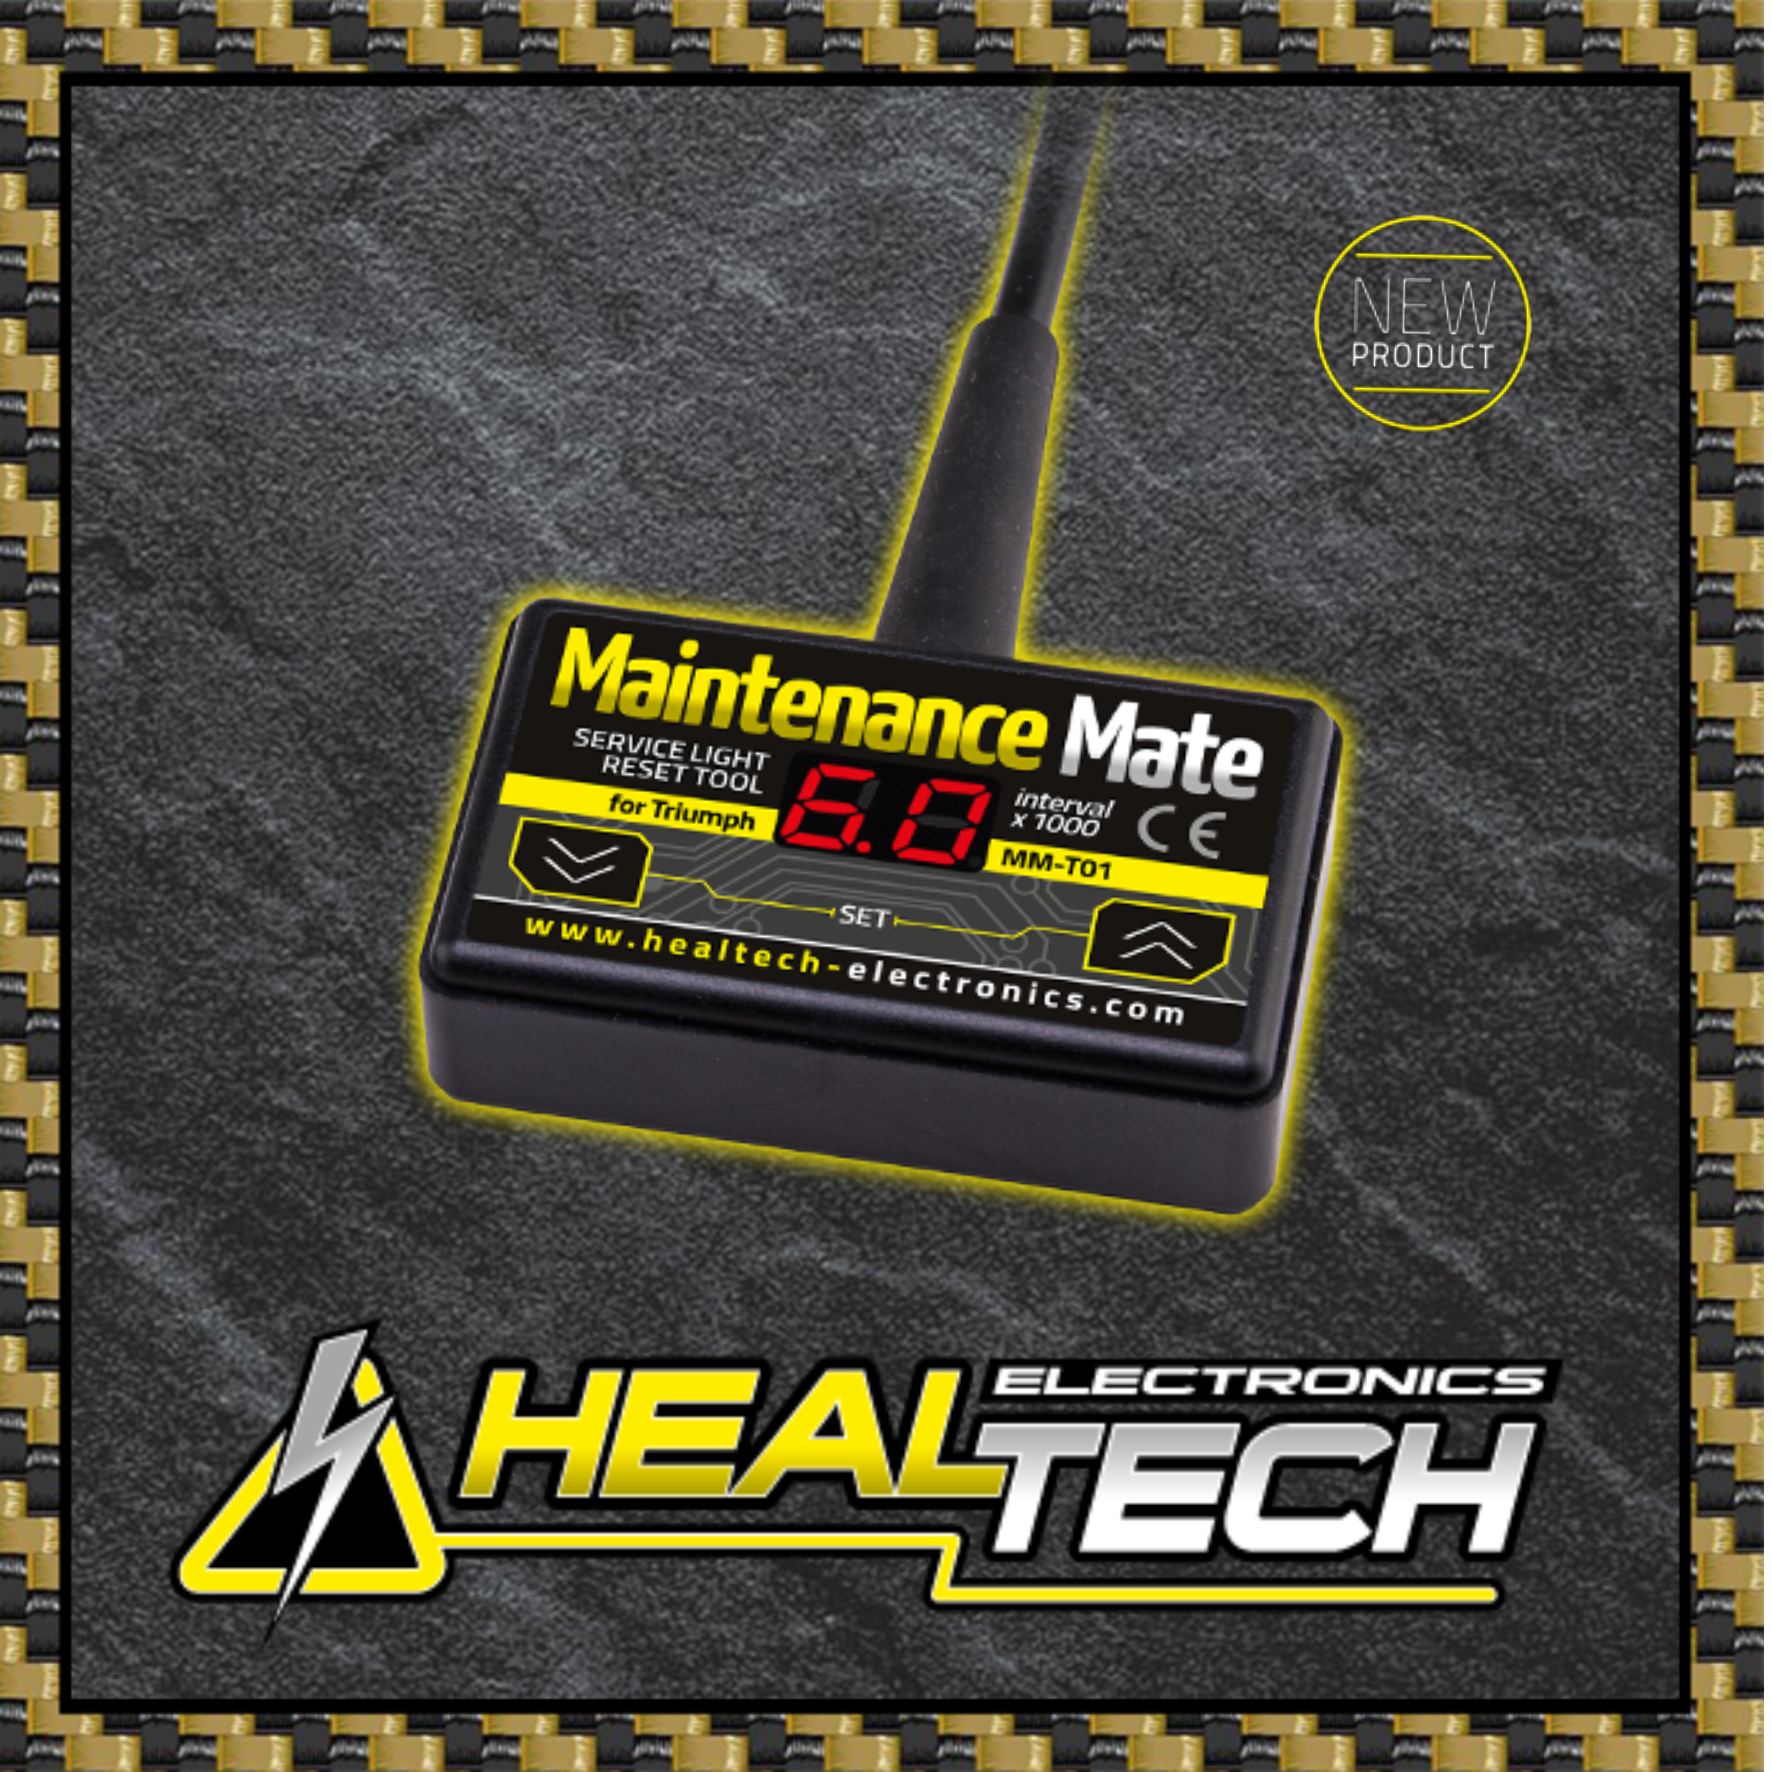 Healtech Maintenance Mate, Maintenance Mate, Healtech - Averys Motorcycles